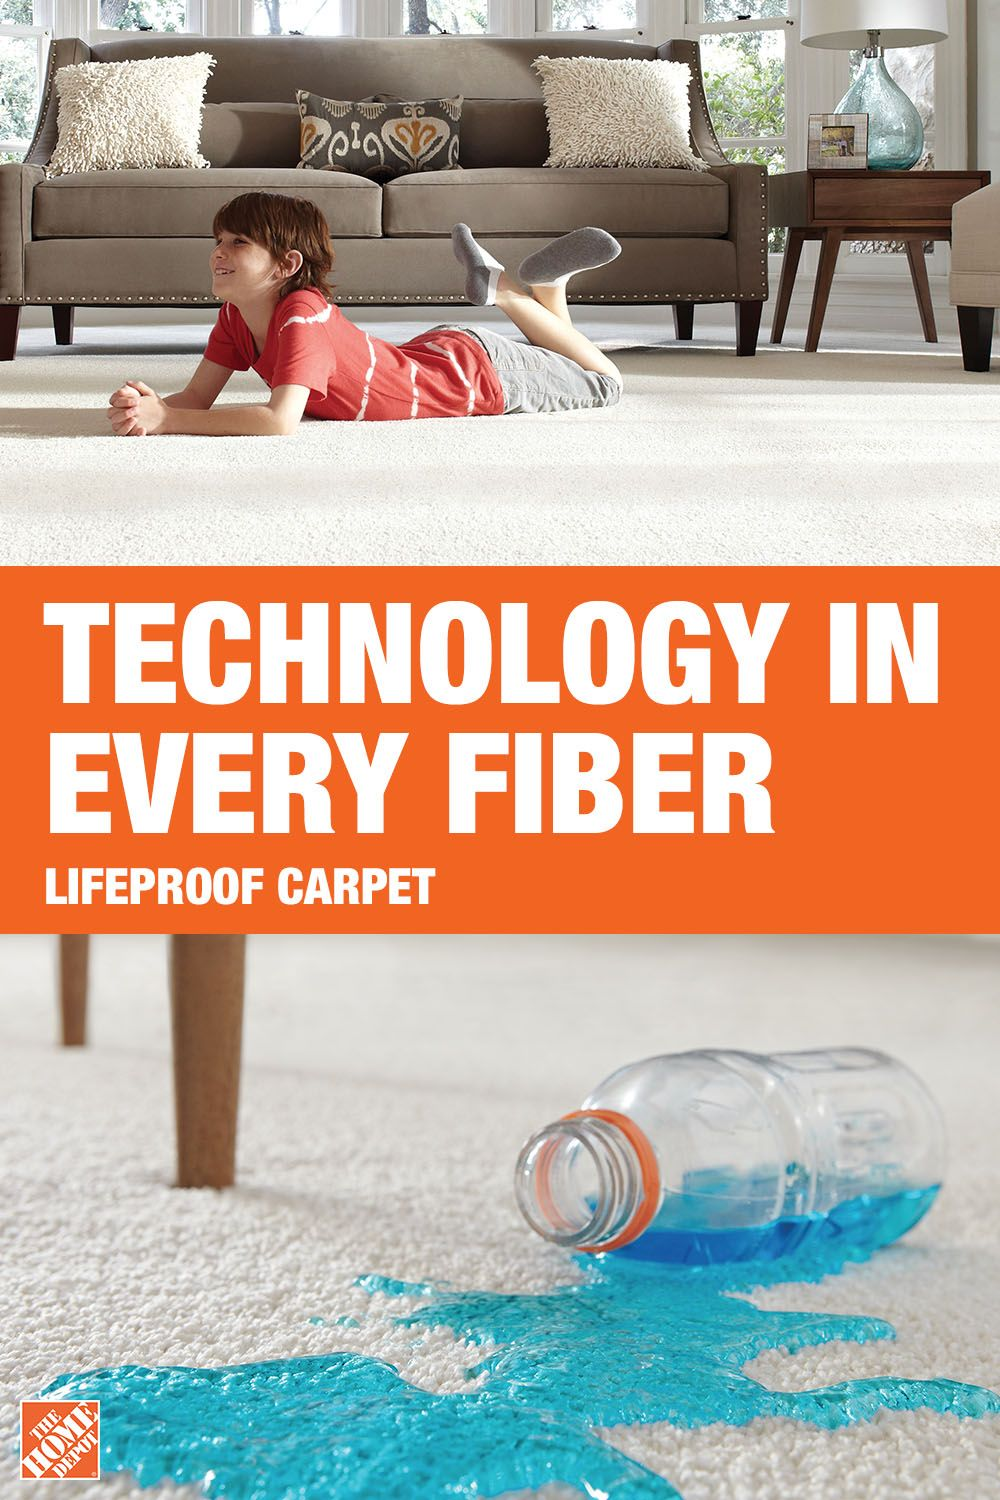 Lifeproof carpet has the stainproof and petproof